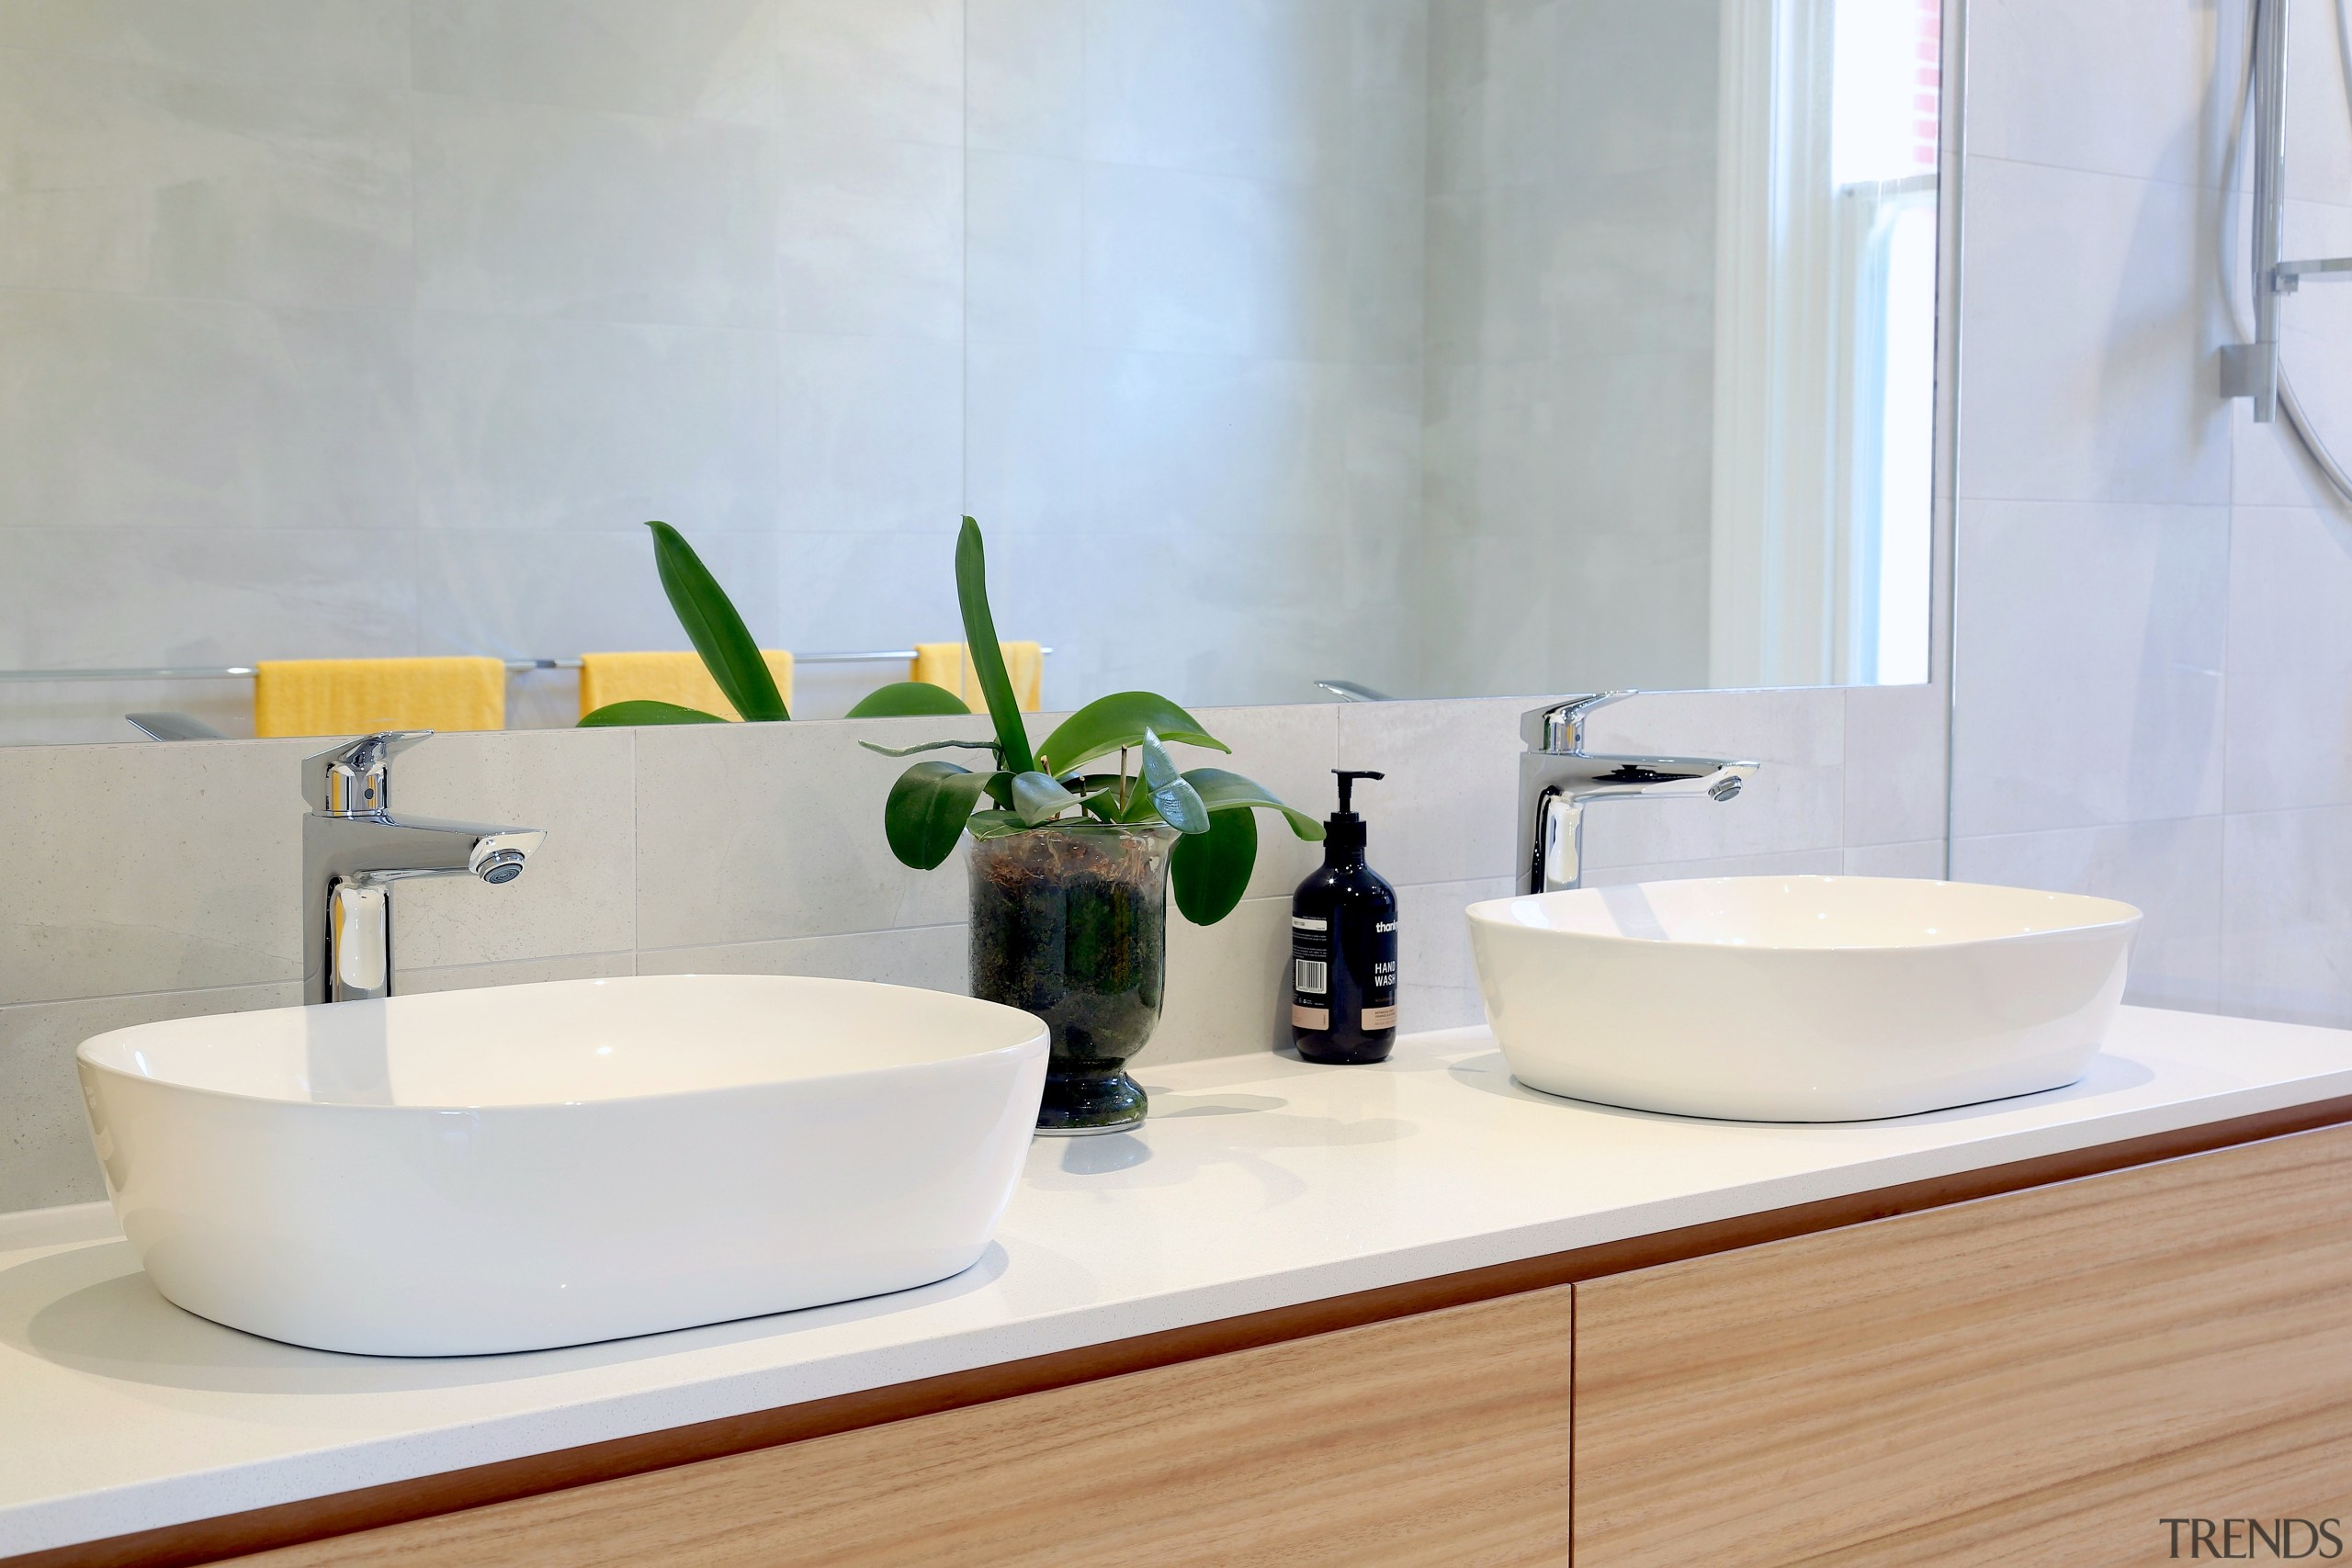 The contemporary design for this bathroom included tabletop architecture, bathroom, bathroom accessory, bathroom cabinet, bathroom sink, ceramic, countertop, floor, flooring, furniture, interior design, material property, plumbing fixture, product, property, room, sink, tap, tile, wall, white, white, gray